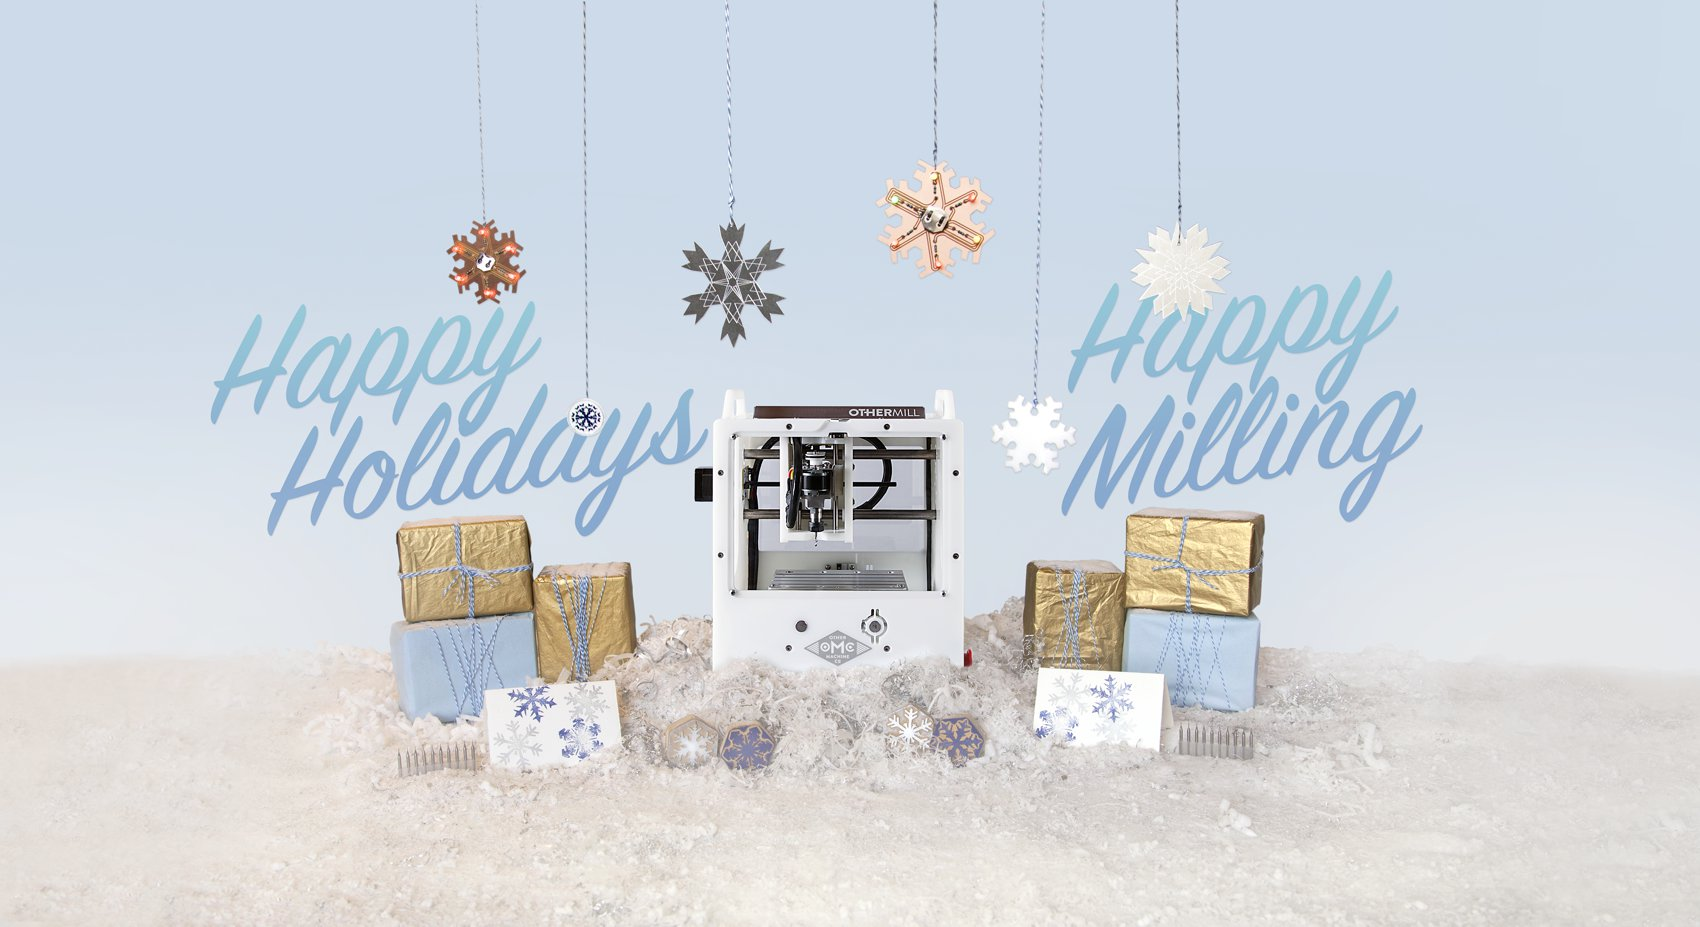 Happy Holidays! Happy Milling!